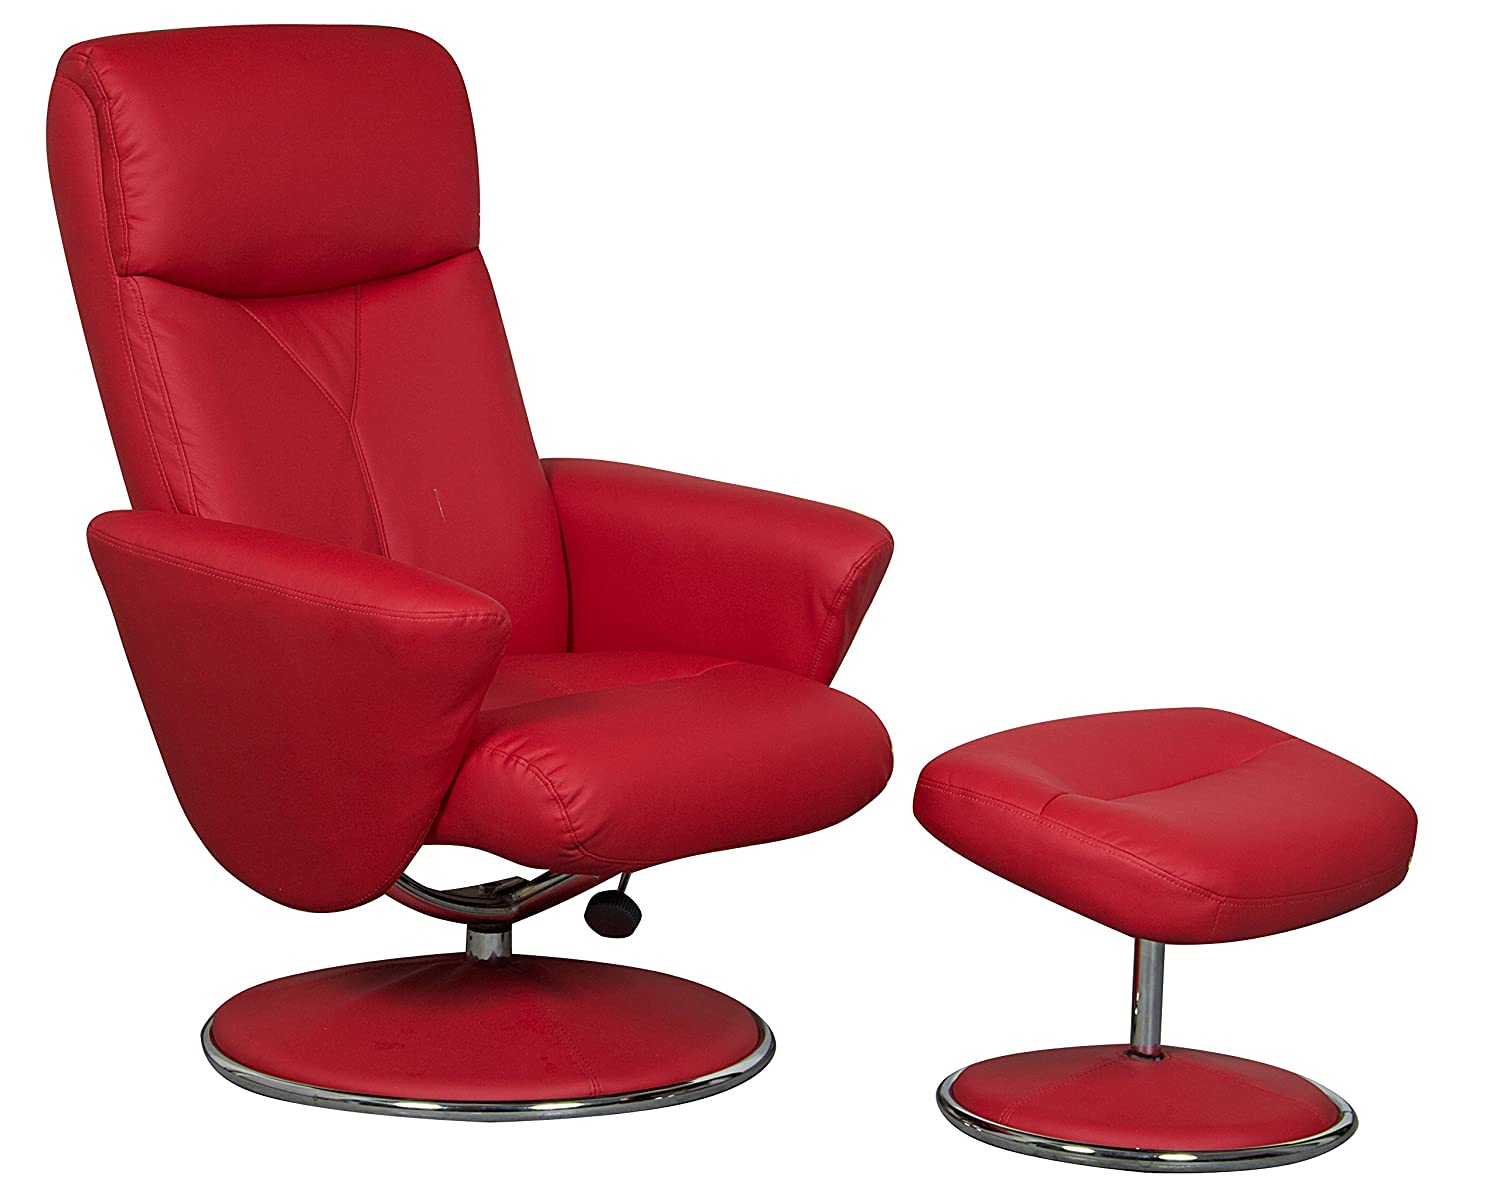 The Alizza   Leather Effect Swivel Recliner / Relaxer Chair In Red:  Amazon.co.uk: Kitchen U0026 Home